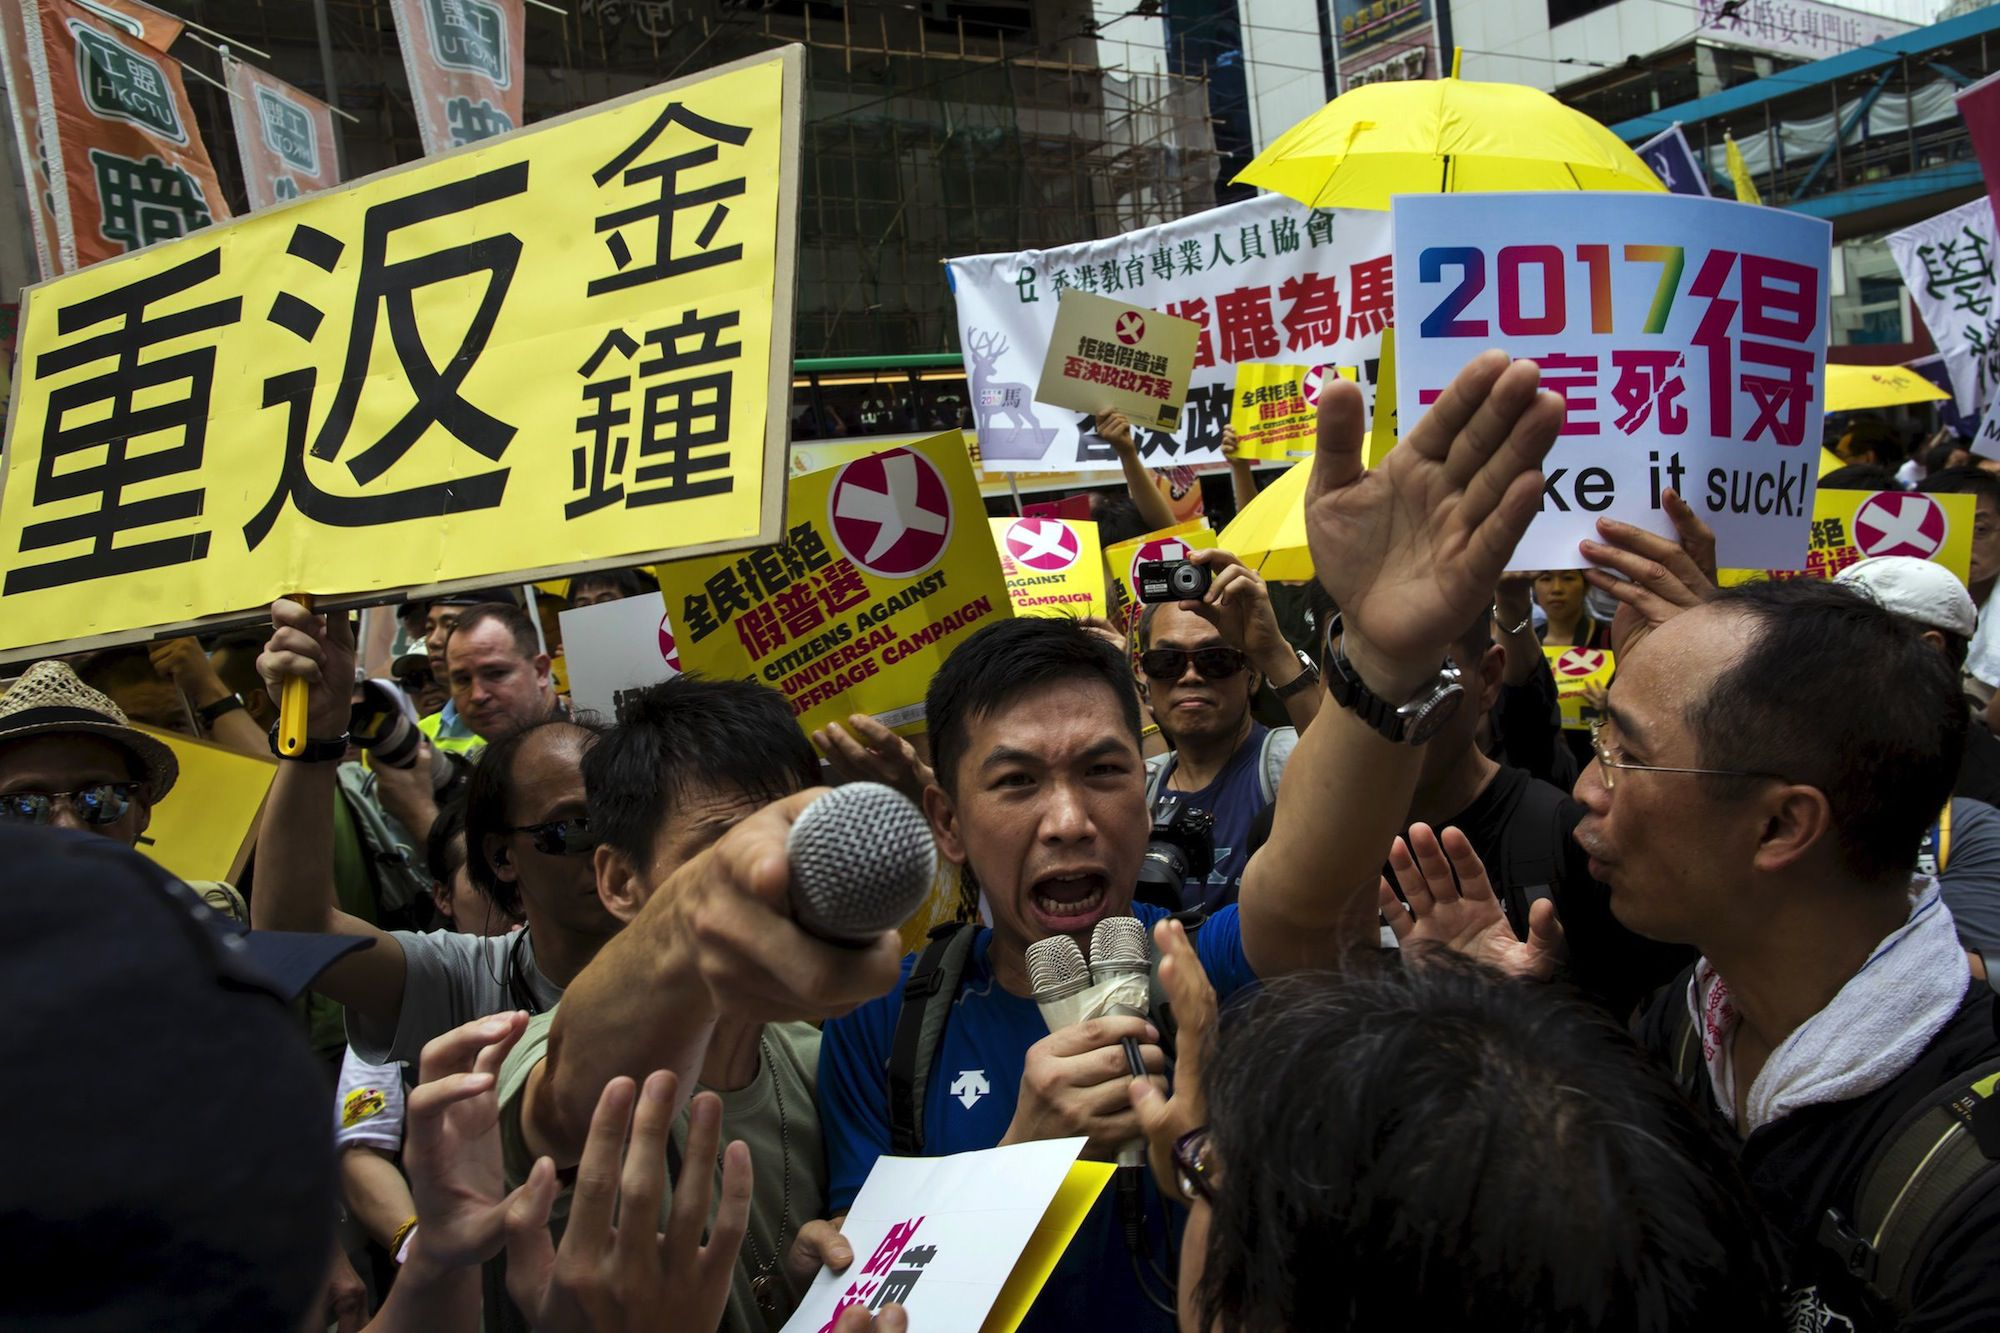 Pro-democracy protesters shout at pro-China supporters at a rally in Hong Kong on June 14th.